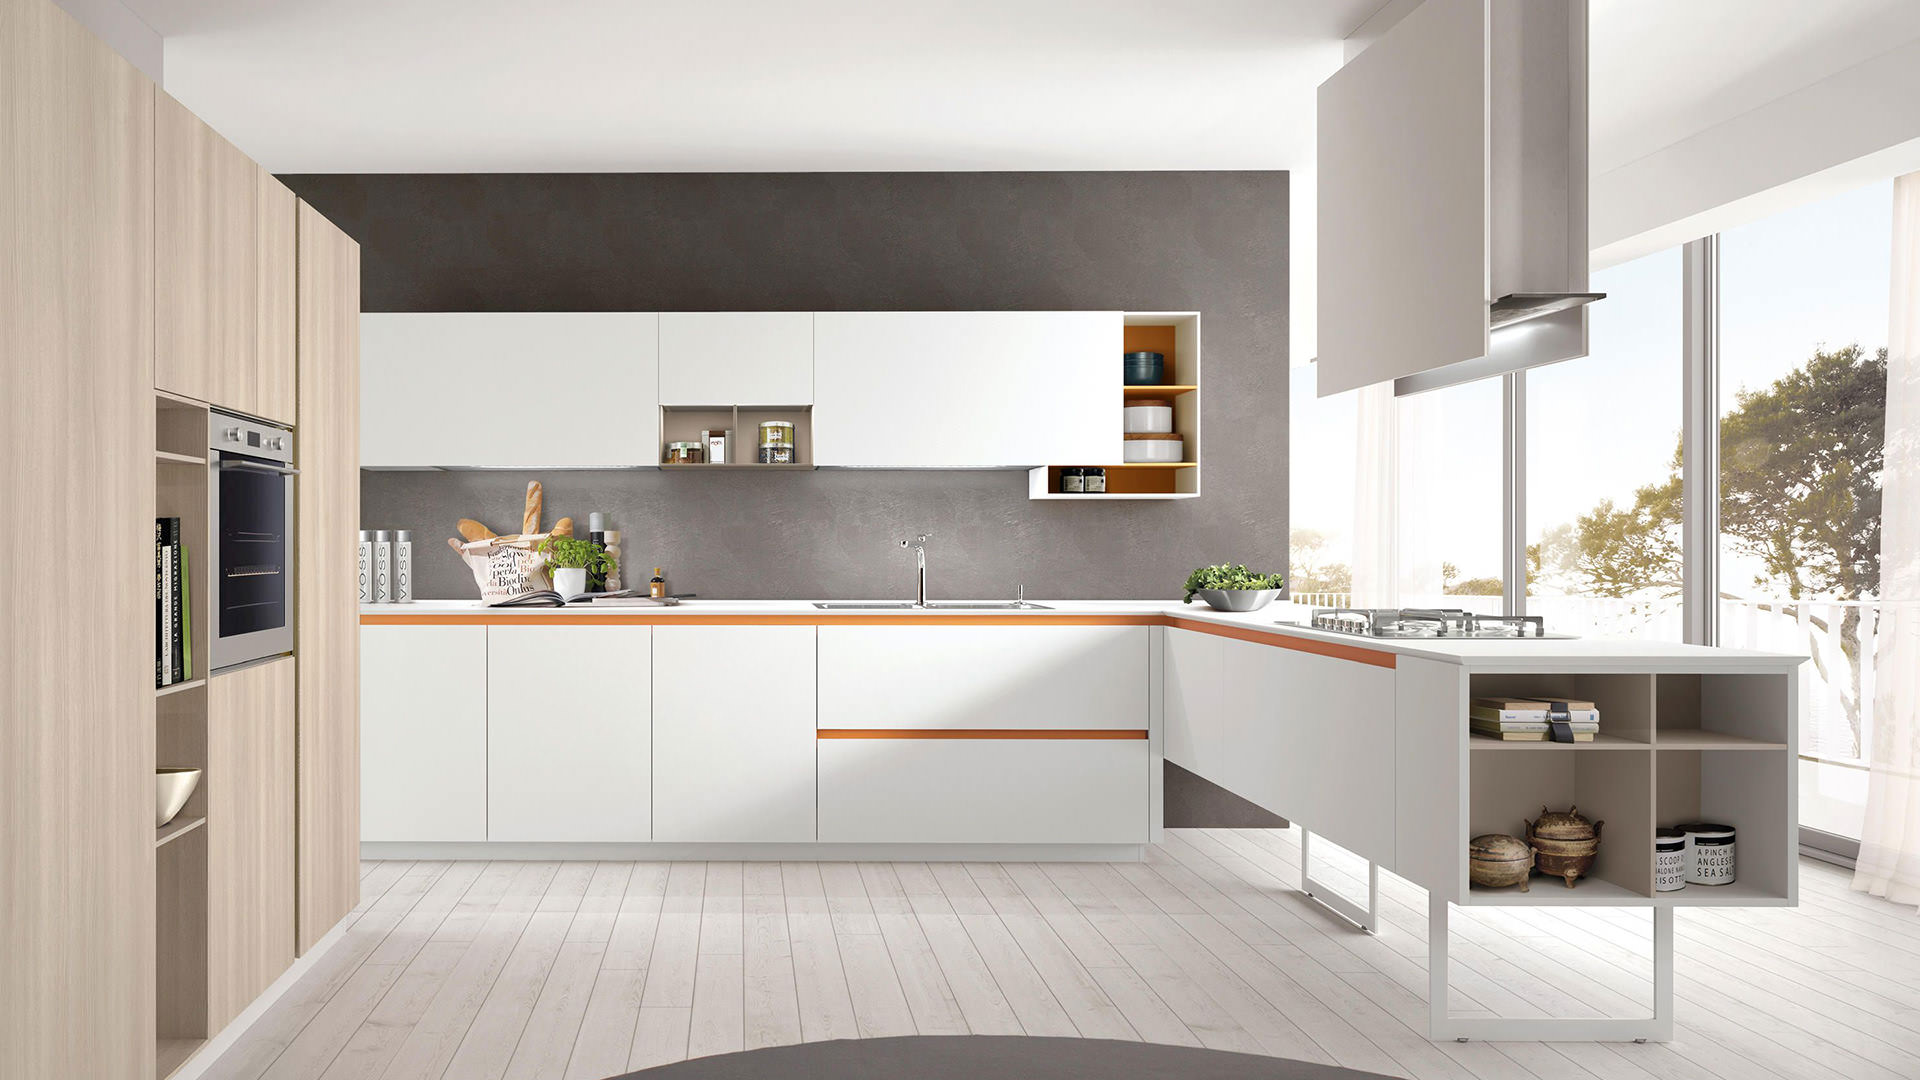 euromobil filo kitchen studio living & more total home solutions kitchen renovation cyprus larnaca nicosia